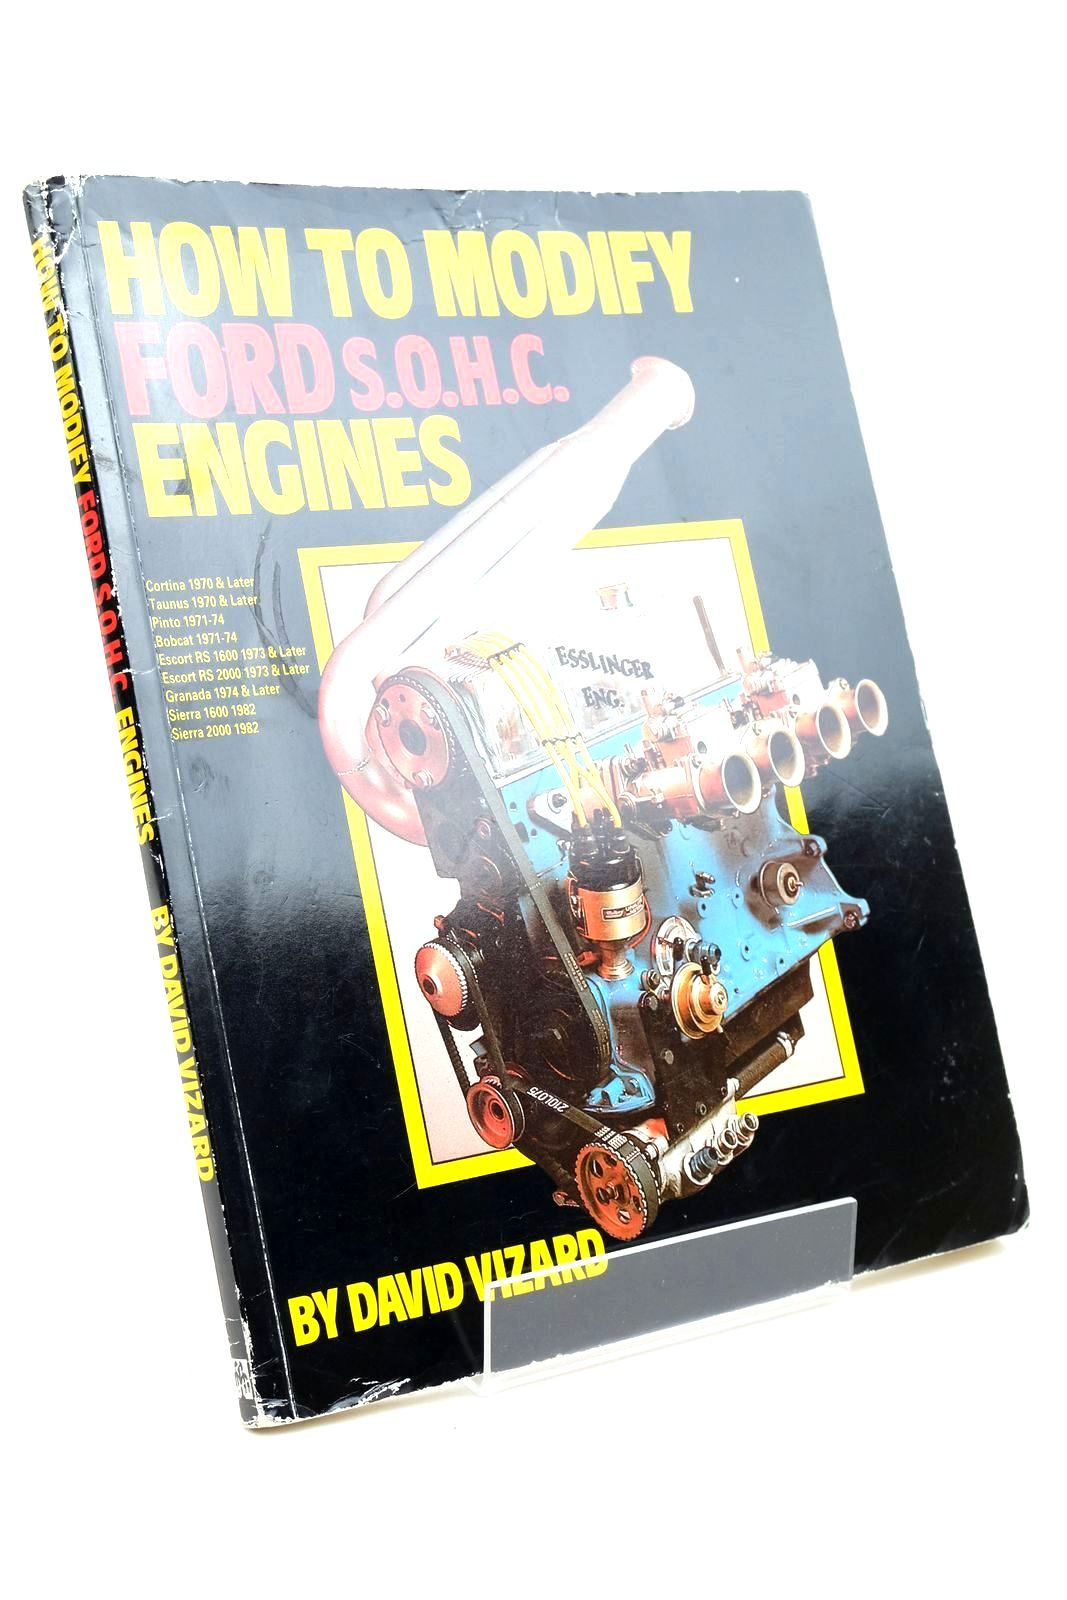 Photo of HOW TO MODIFY FORD S.O.H.C. ENGINES written by Vizard, David published by Fountain Press (STOCK CODE: 1321241)  for sale by Stella & Rose's Books